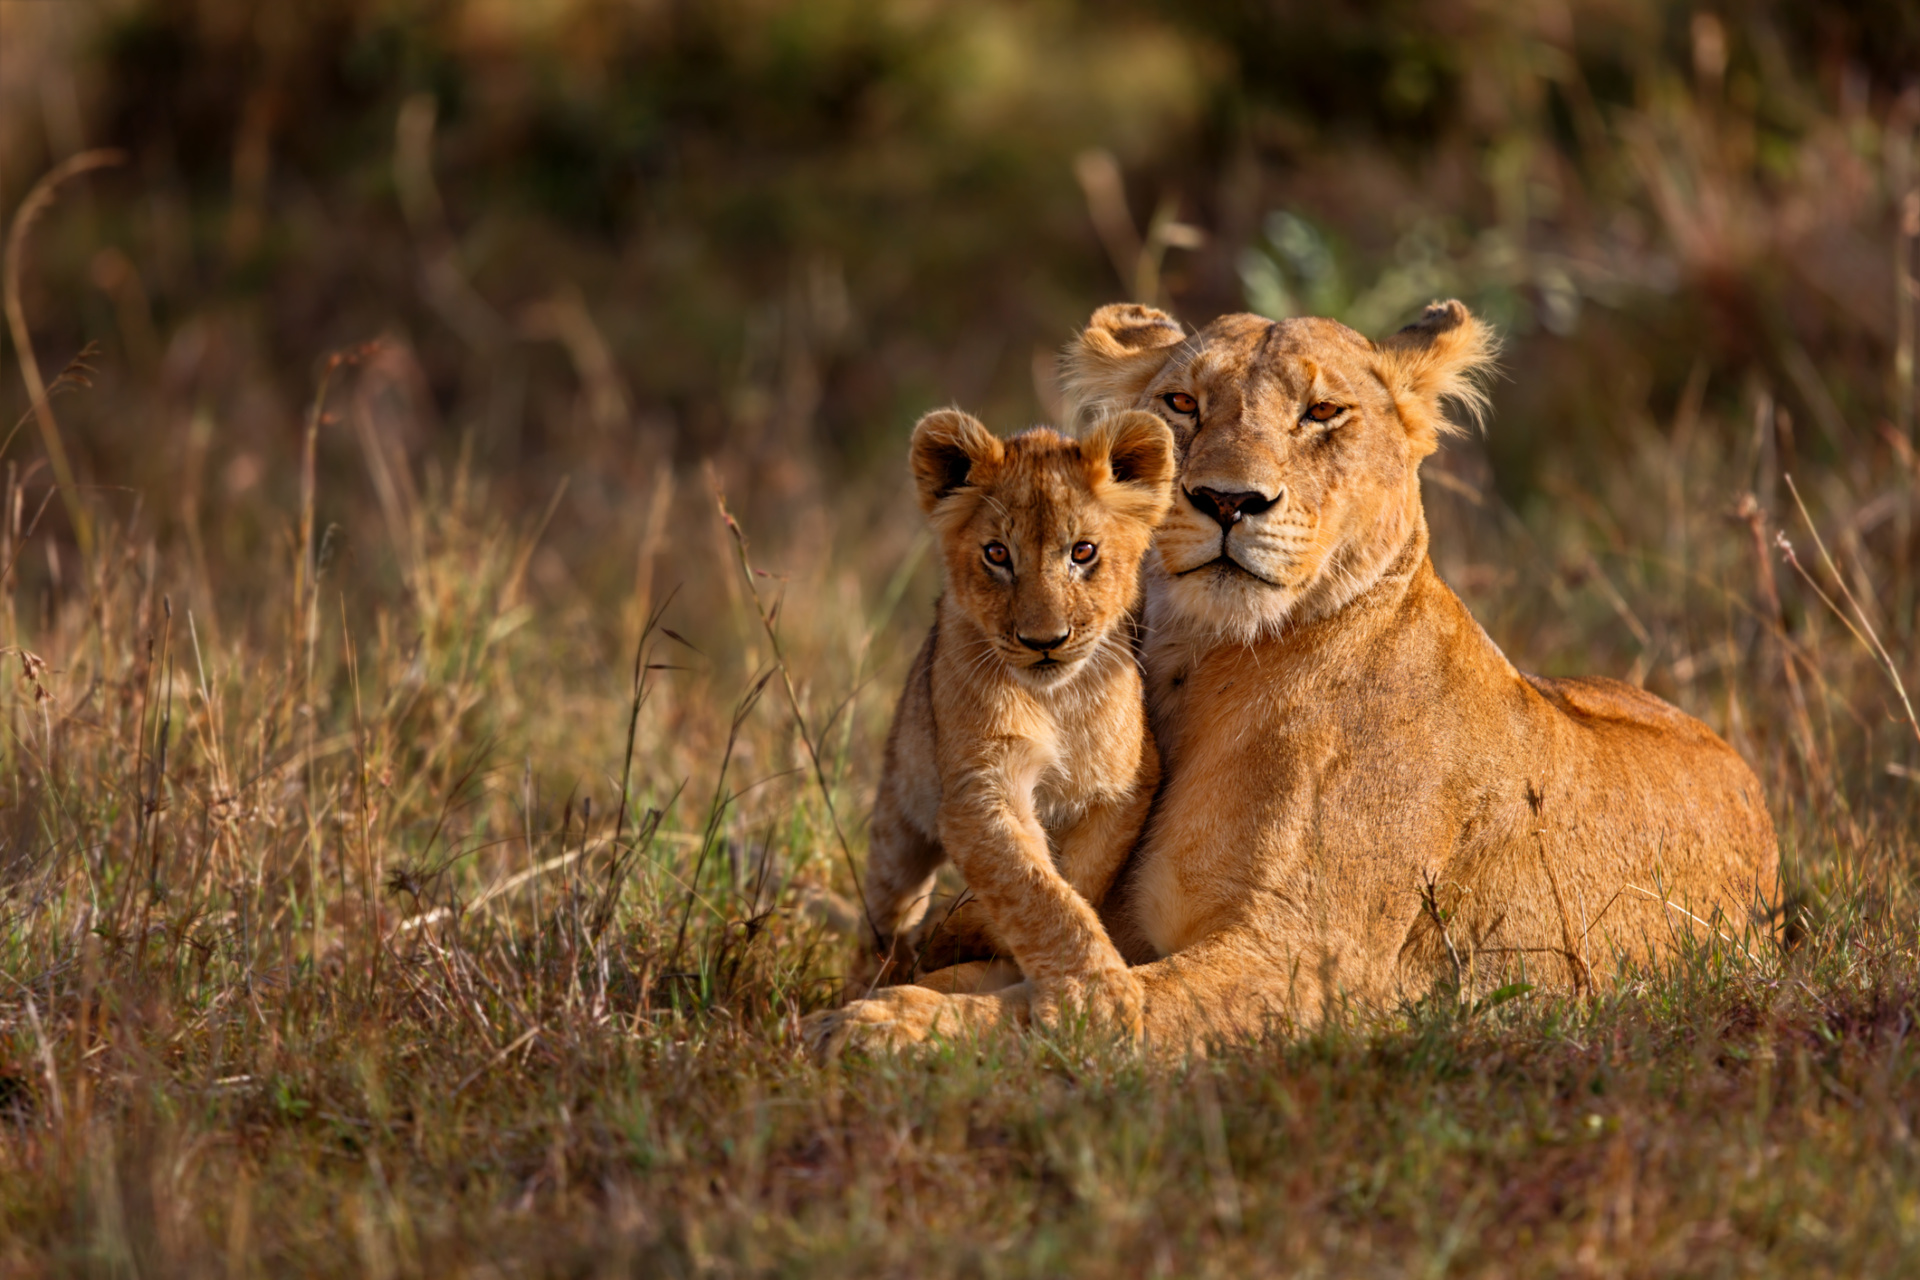 The China-Africa Wildlife Conservation Council